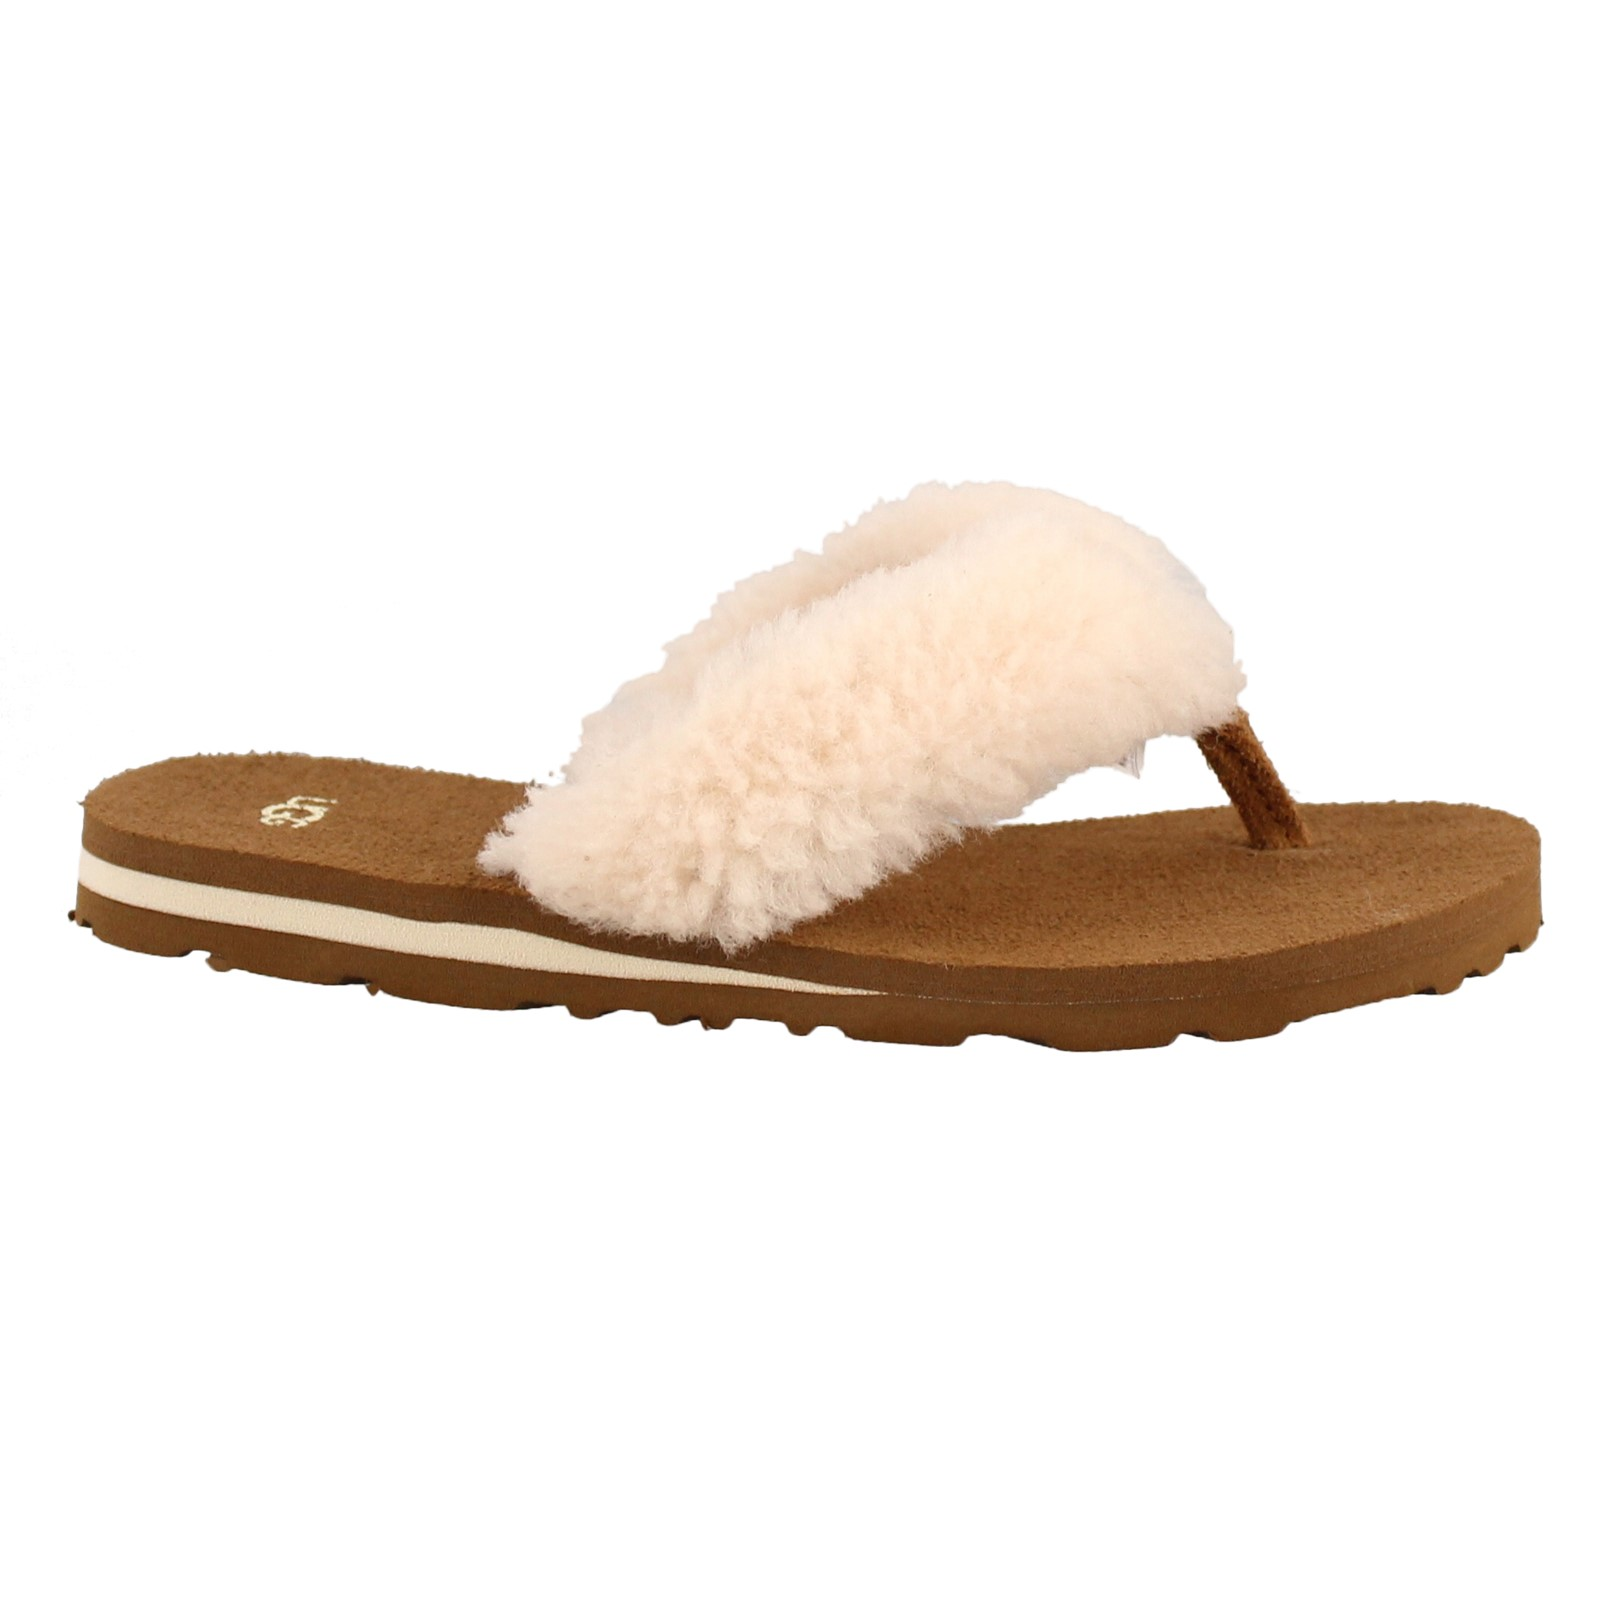 Girl's Ugg, Schutter Thong Sandals